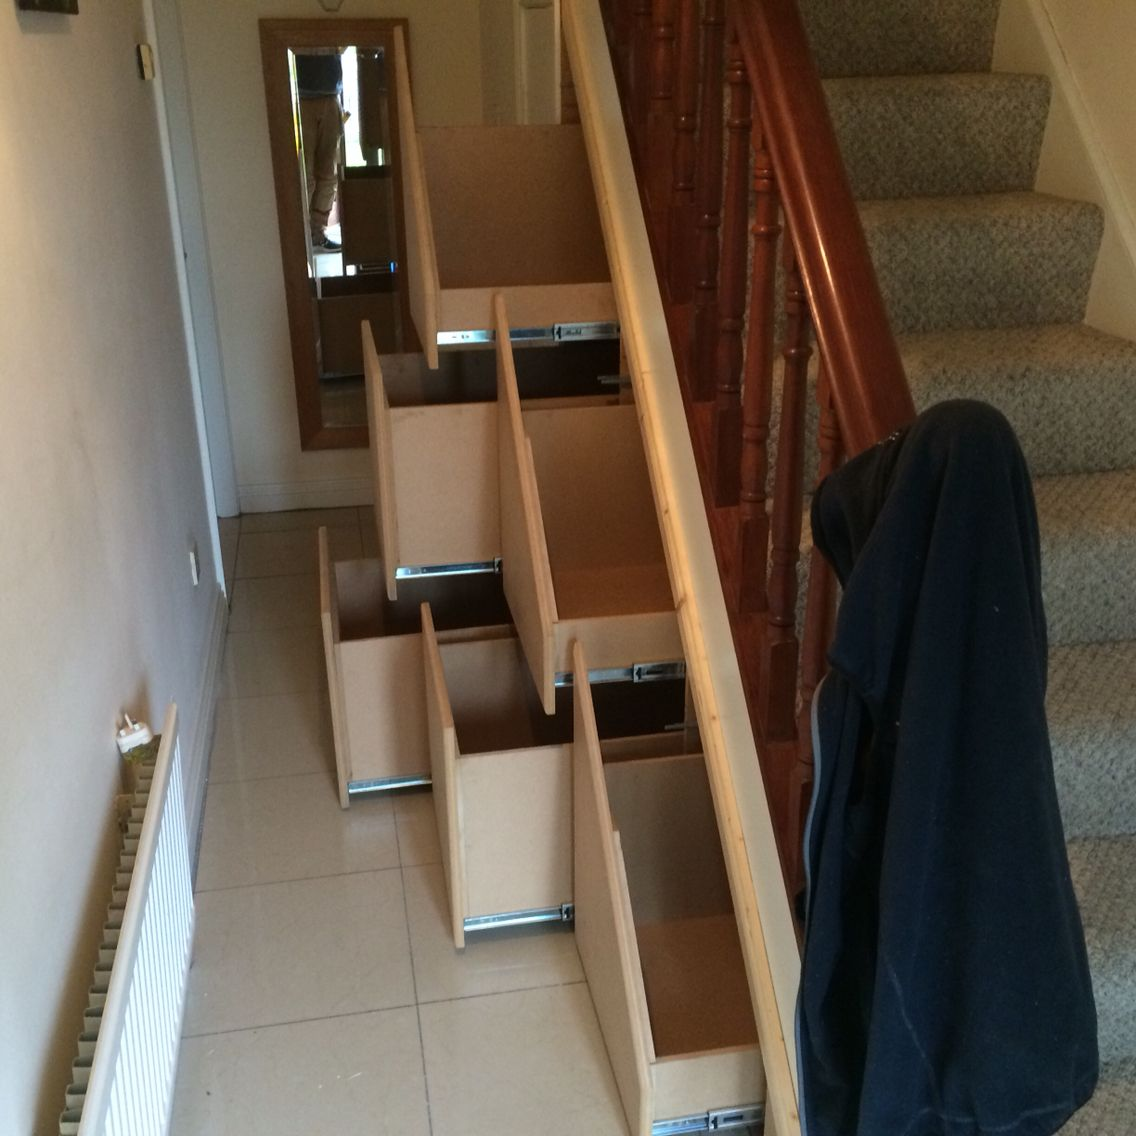 Bespoke Under Stairs Shelving: Absolute Bespoke Carpentry Made This Mdf Under Stairs